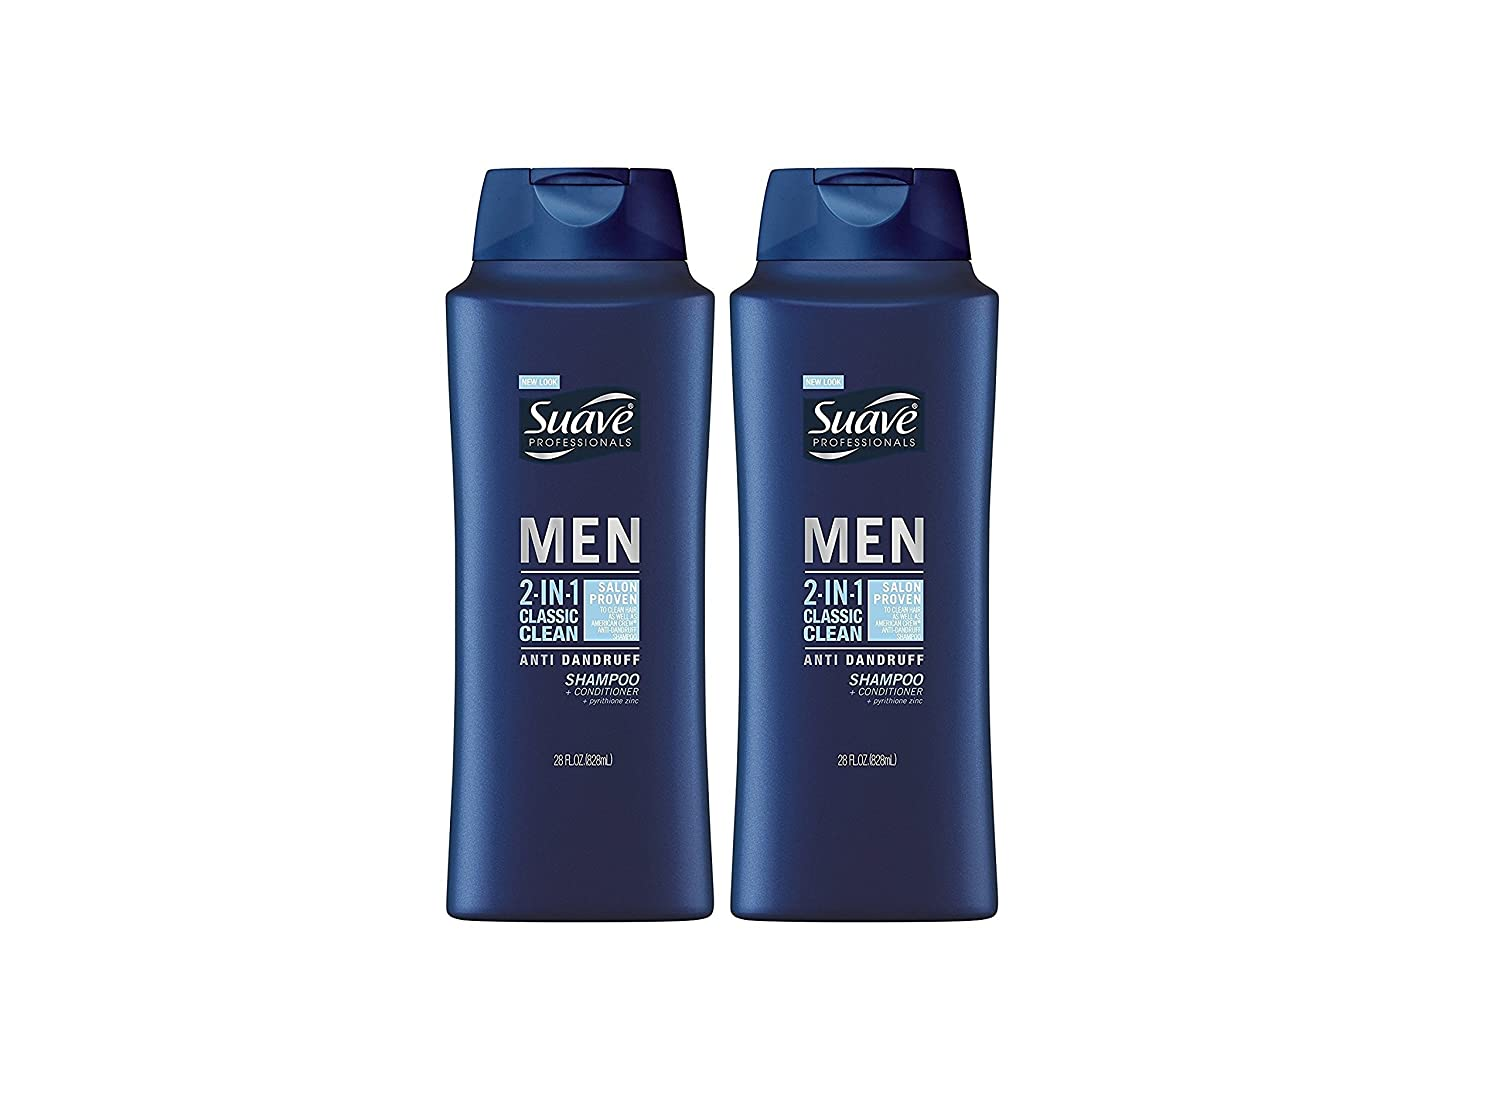 Suave Professionals for Men Anti Dandruff Shampoo